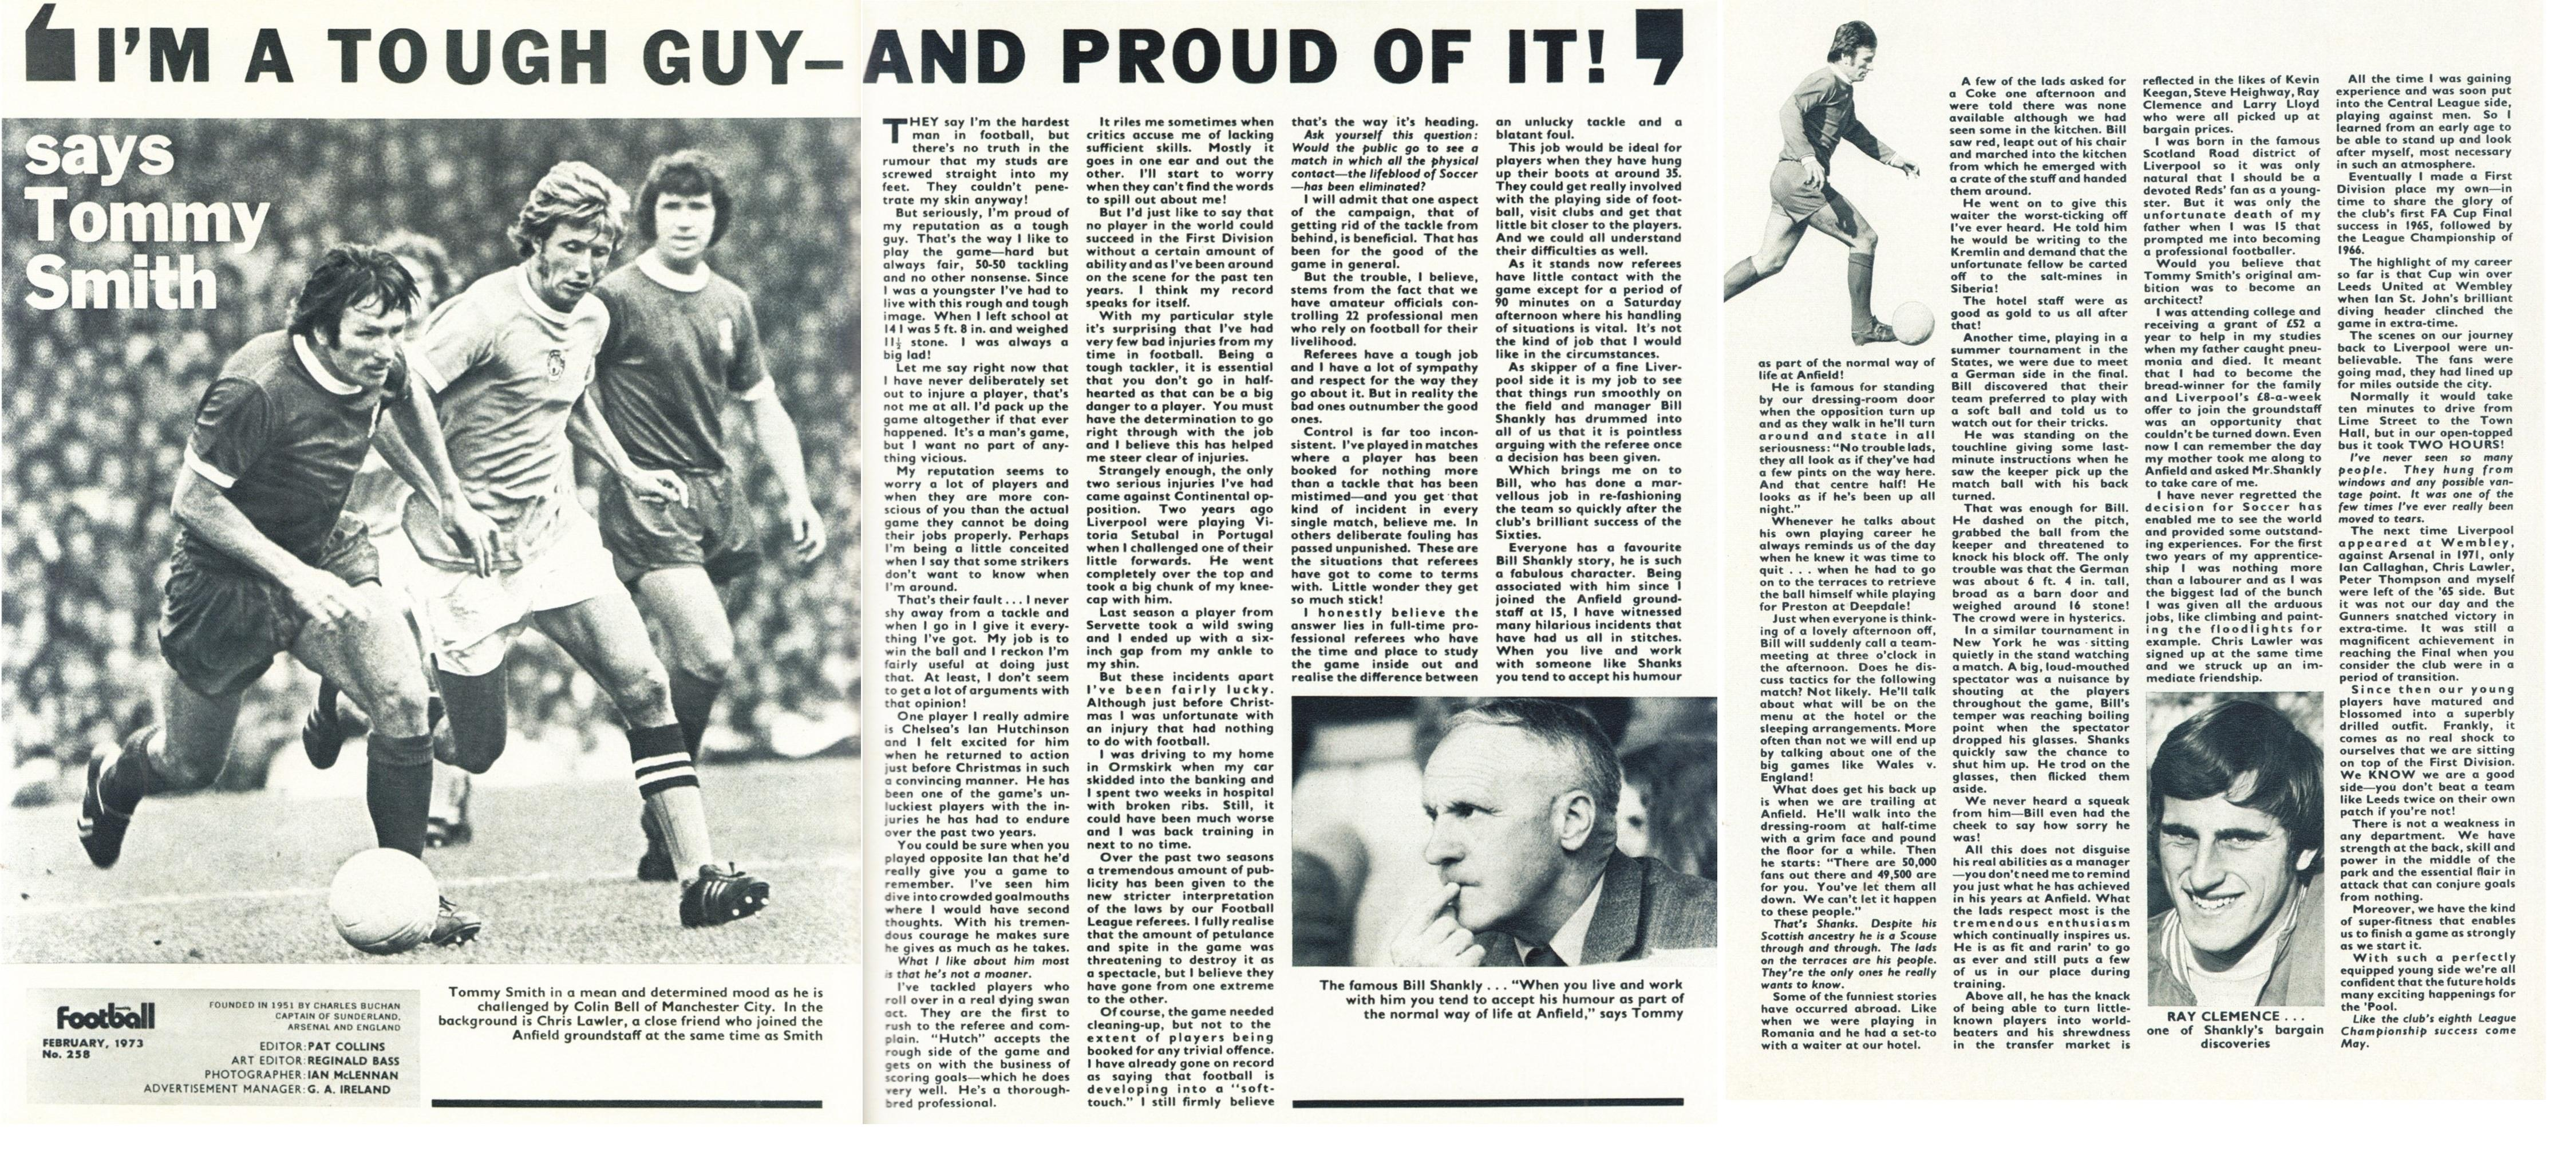 I'm a tough guy and proud of it - Football Monthly February 1973